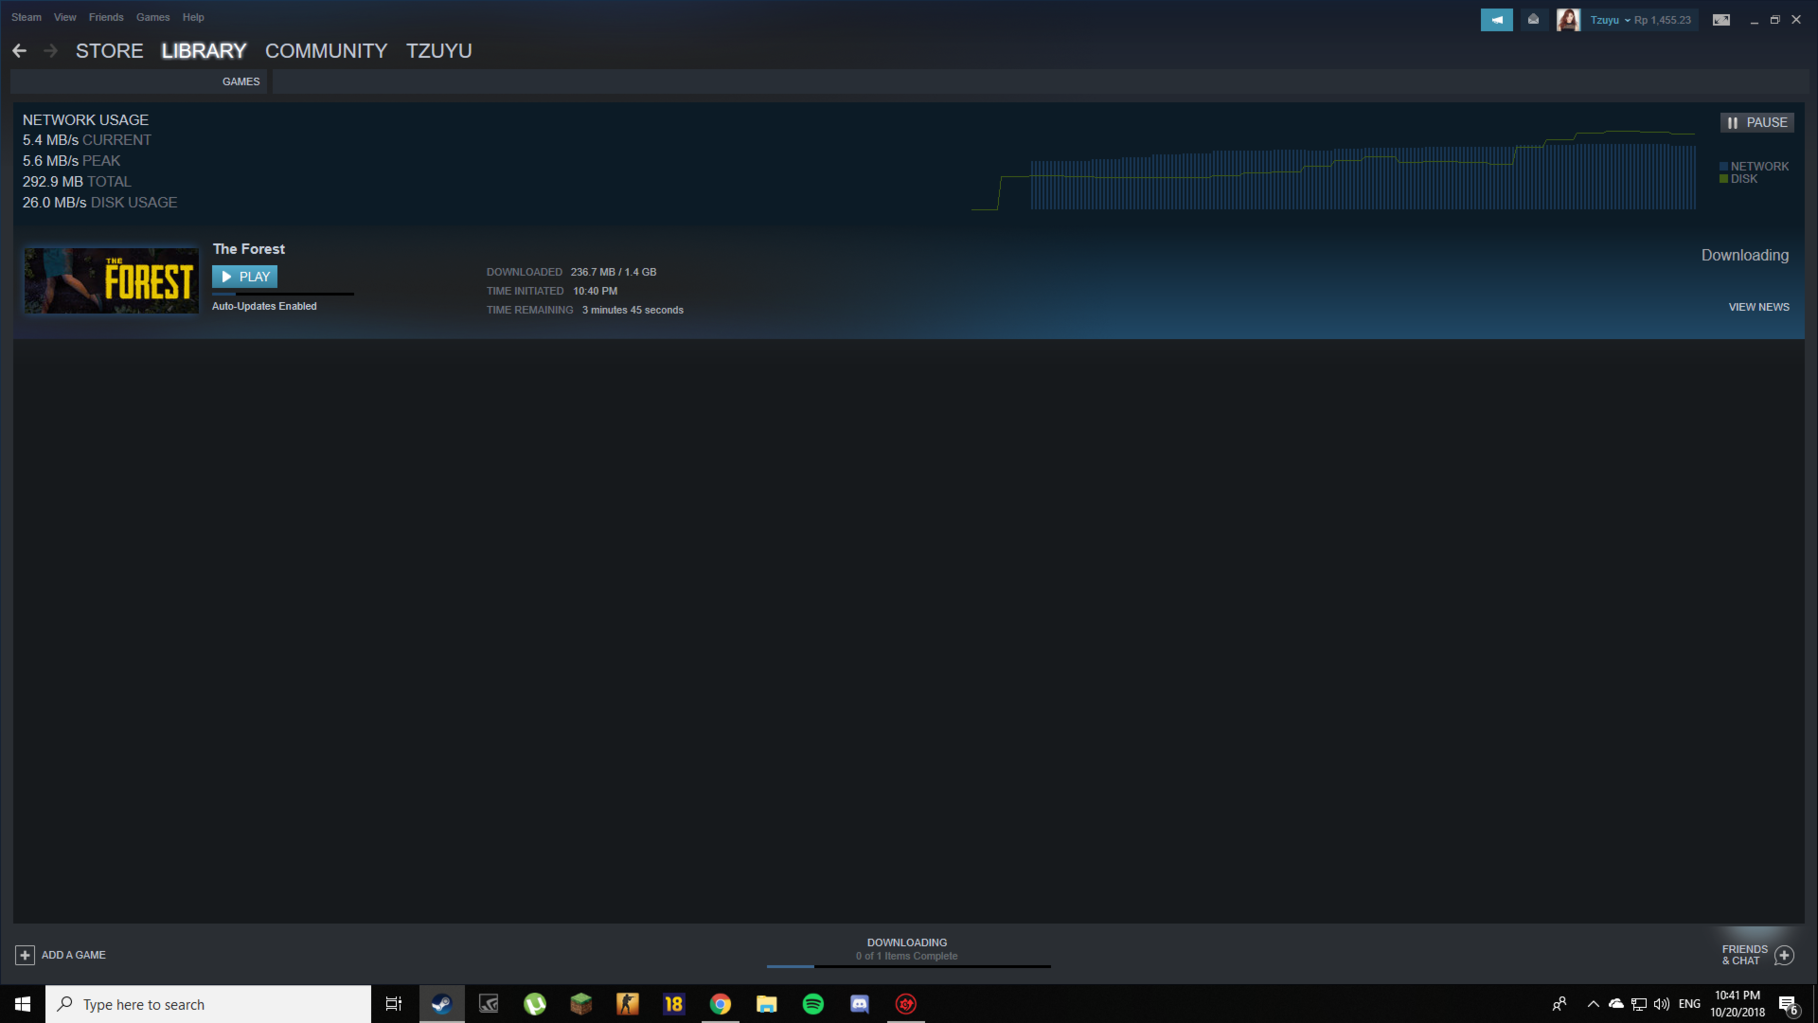 Slow internet but speedtest and steam download speeds tell otherwise